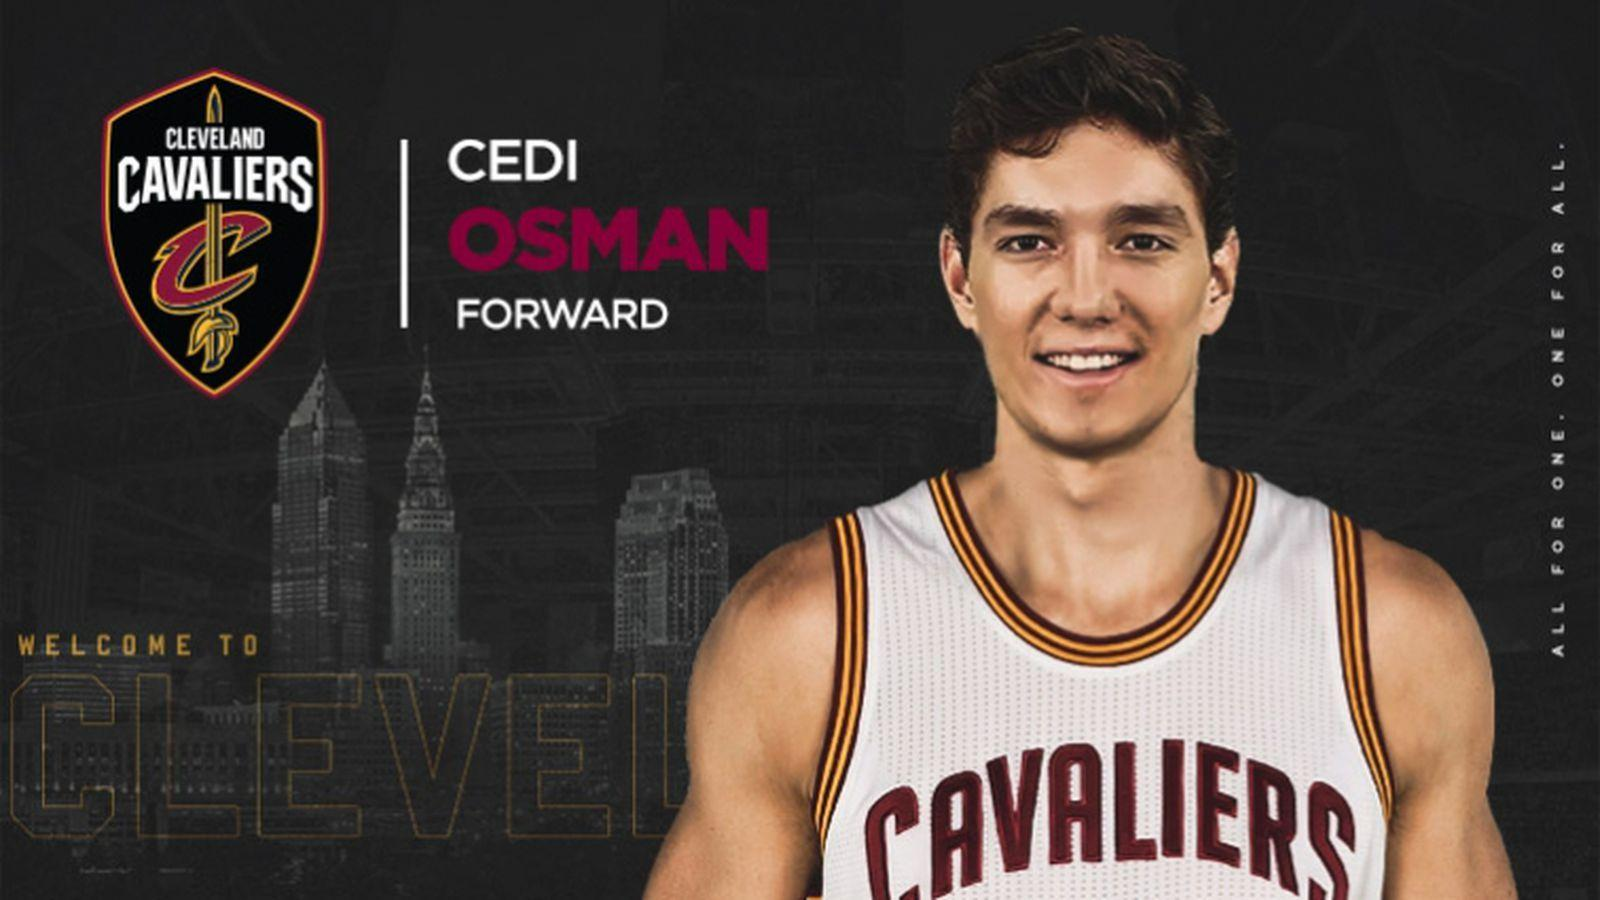 Cavaliers officially announce Cedi Osman signing - Fear The Sword